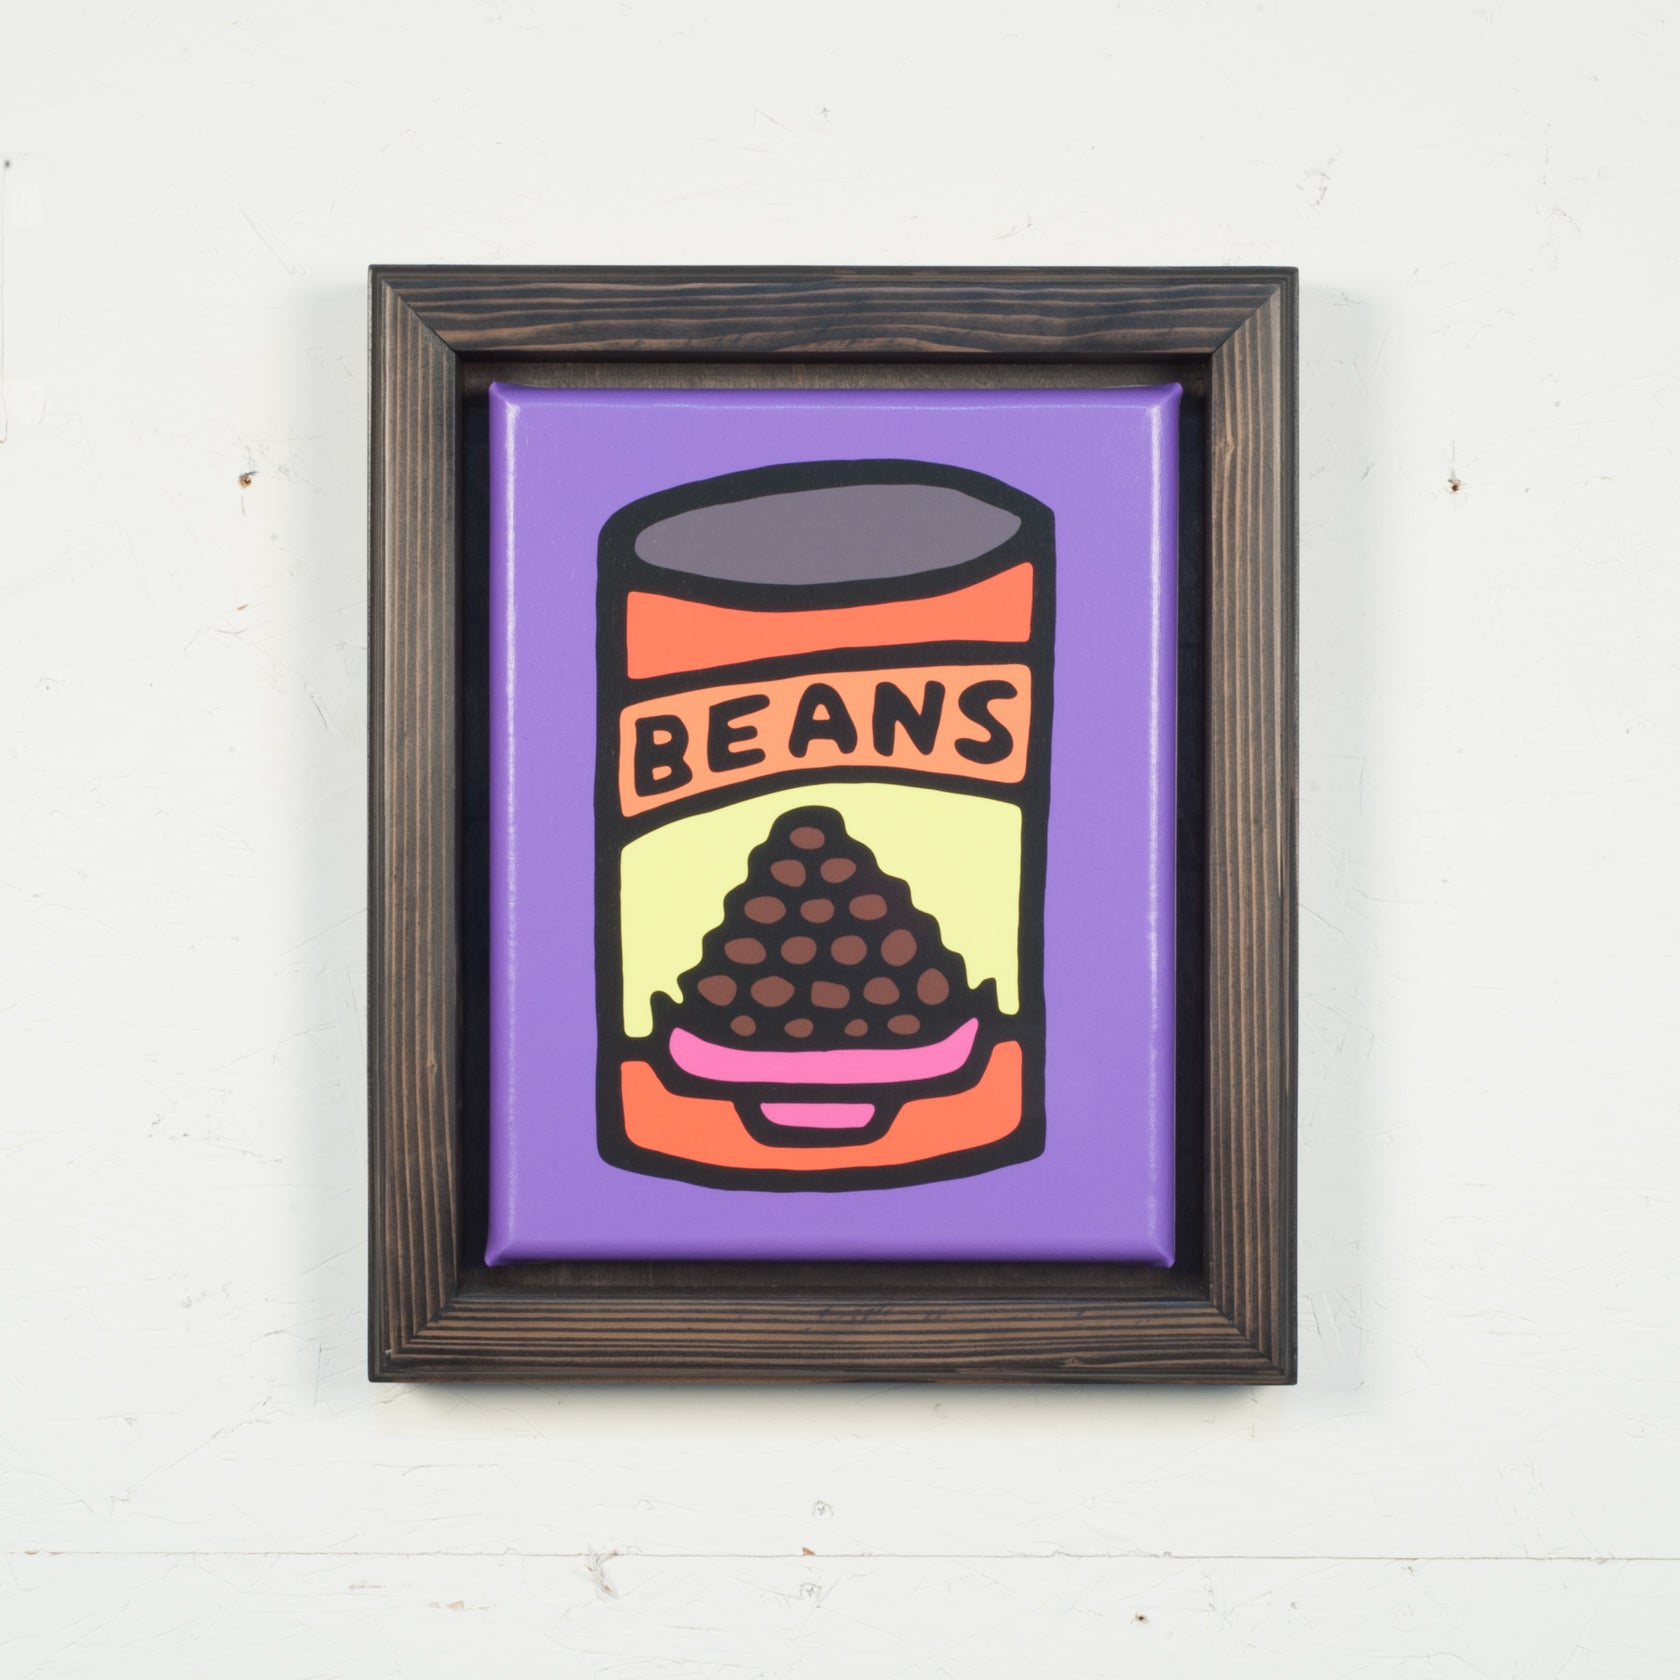 Print On Canvas - Beans (Purple) - 11x14 inches